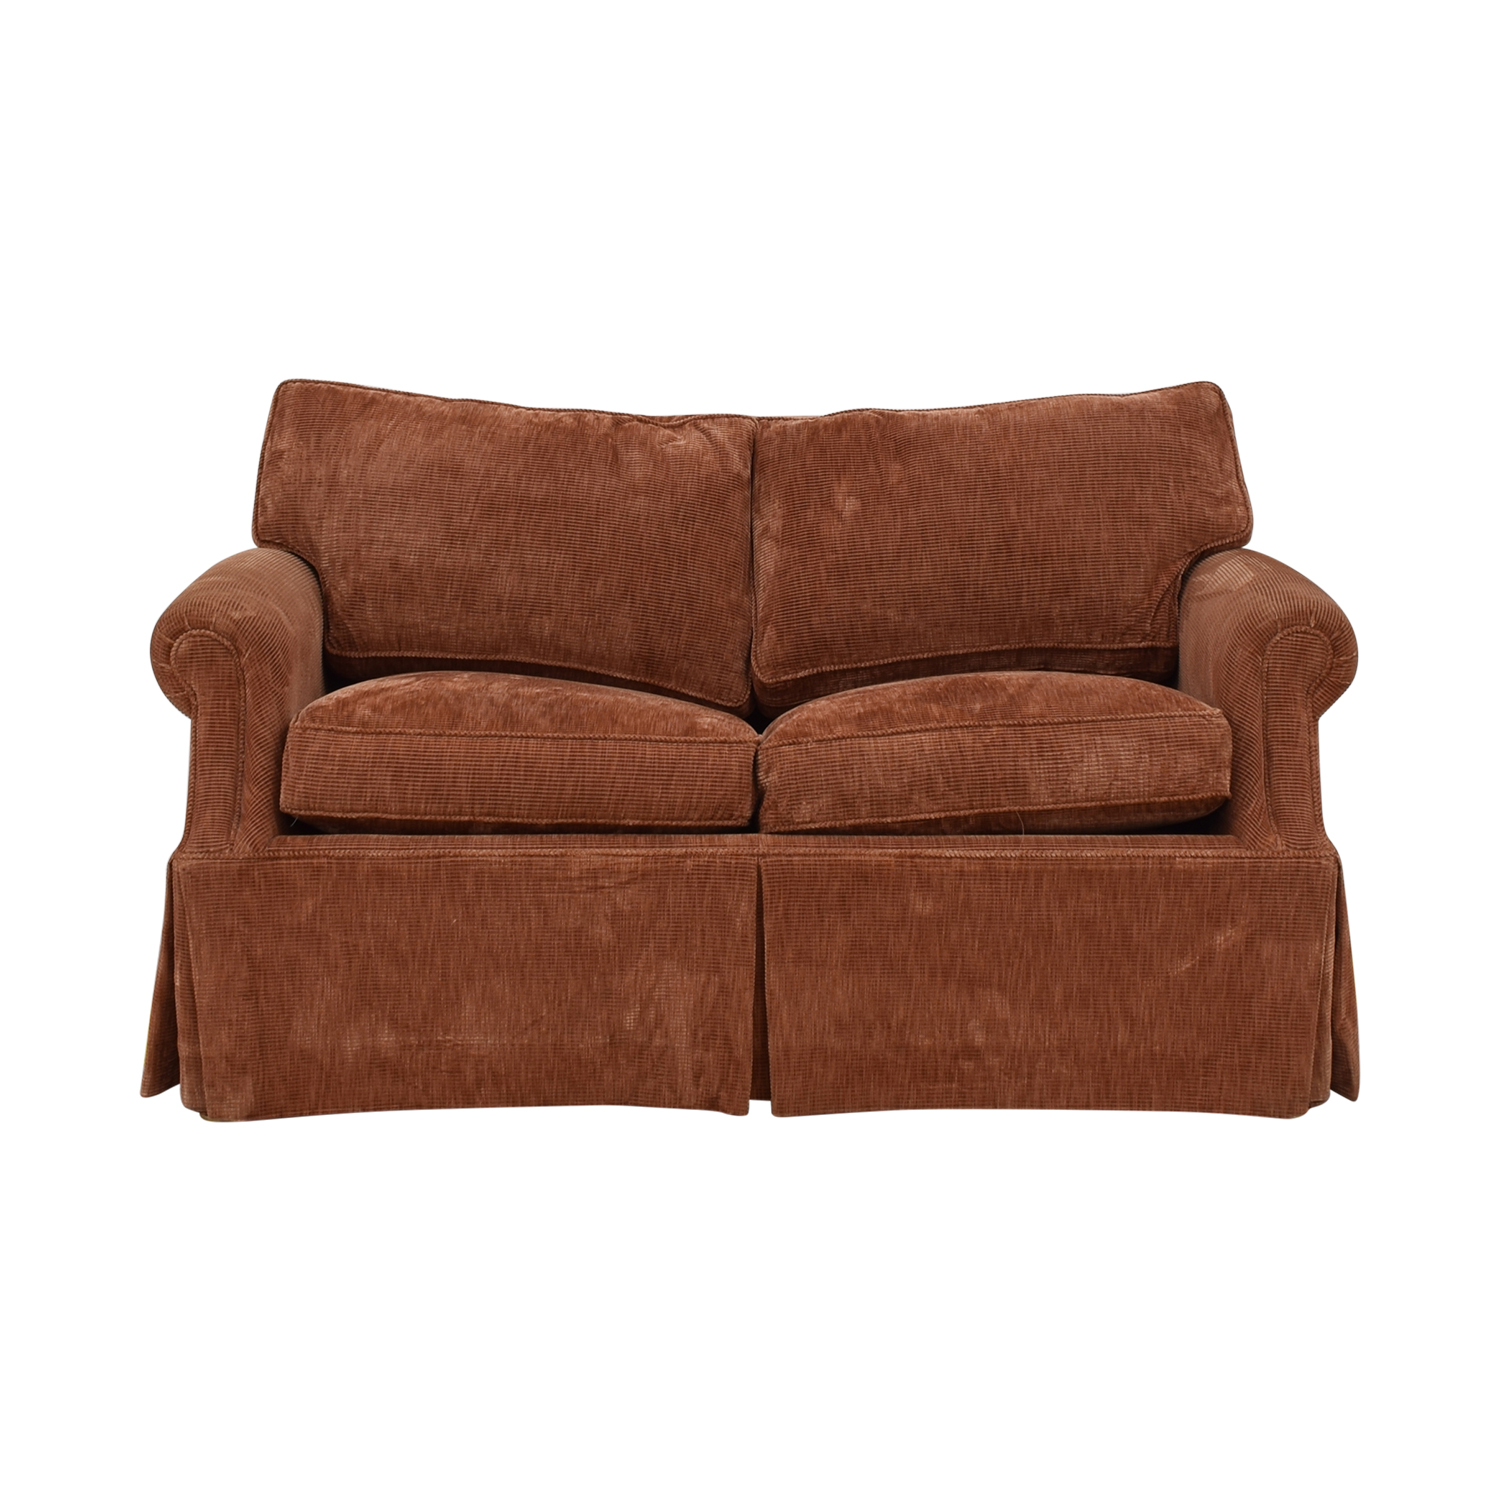 buy Carlyle Carlyle Round Arm Lawson Sofa Bed online